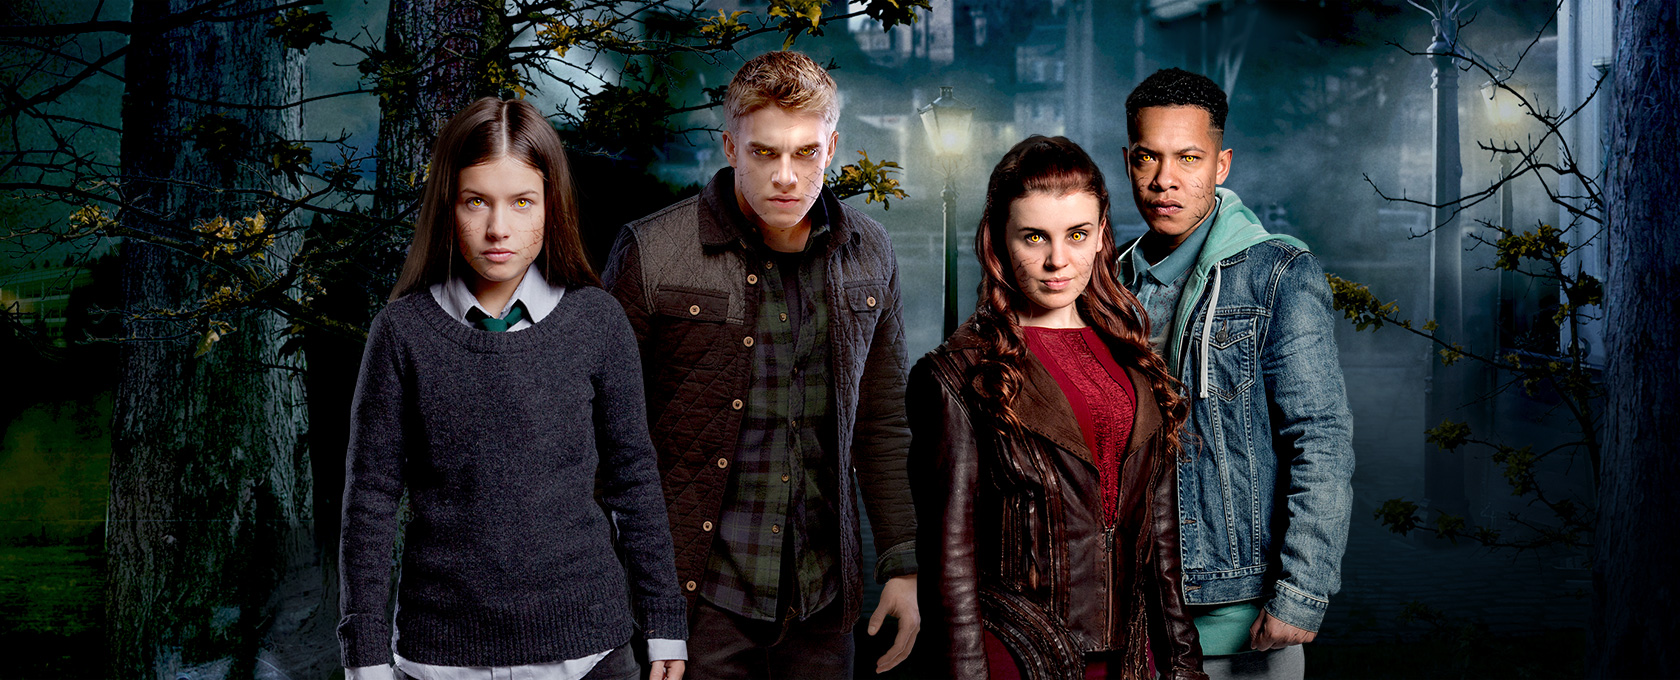 wolfblood tv show free download